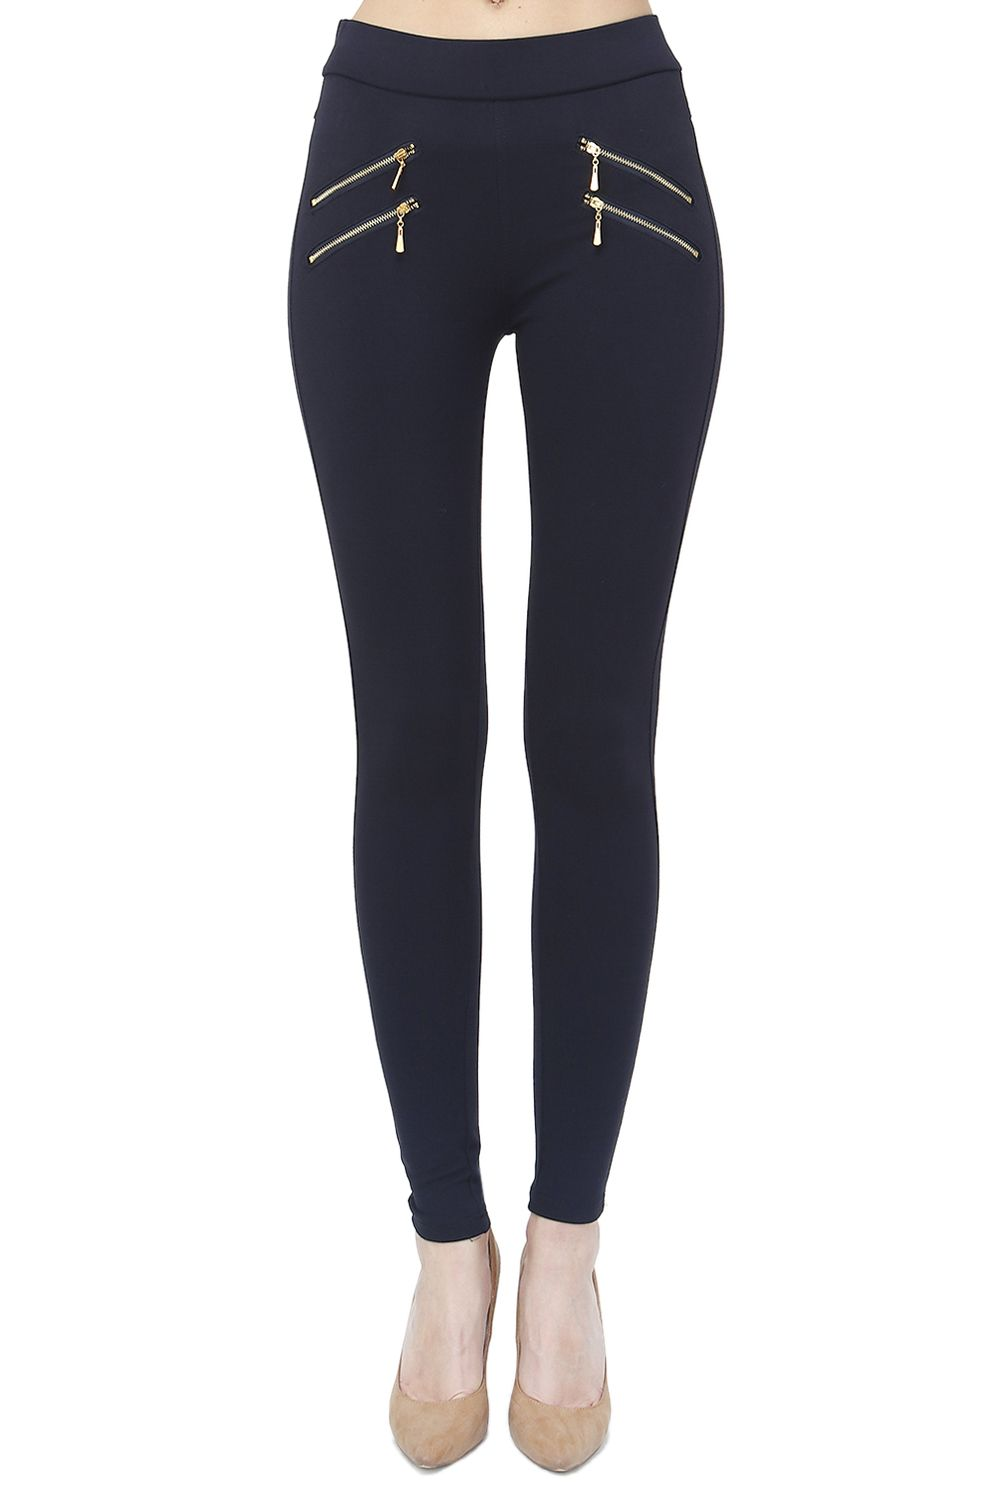 Assuili Double Zip Detail Leggings in Navy